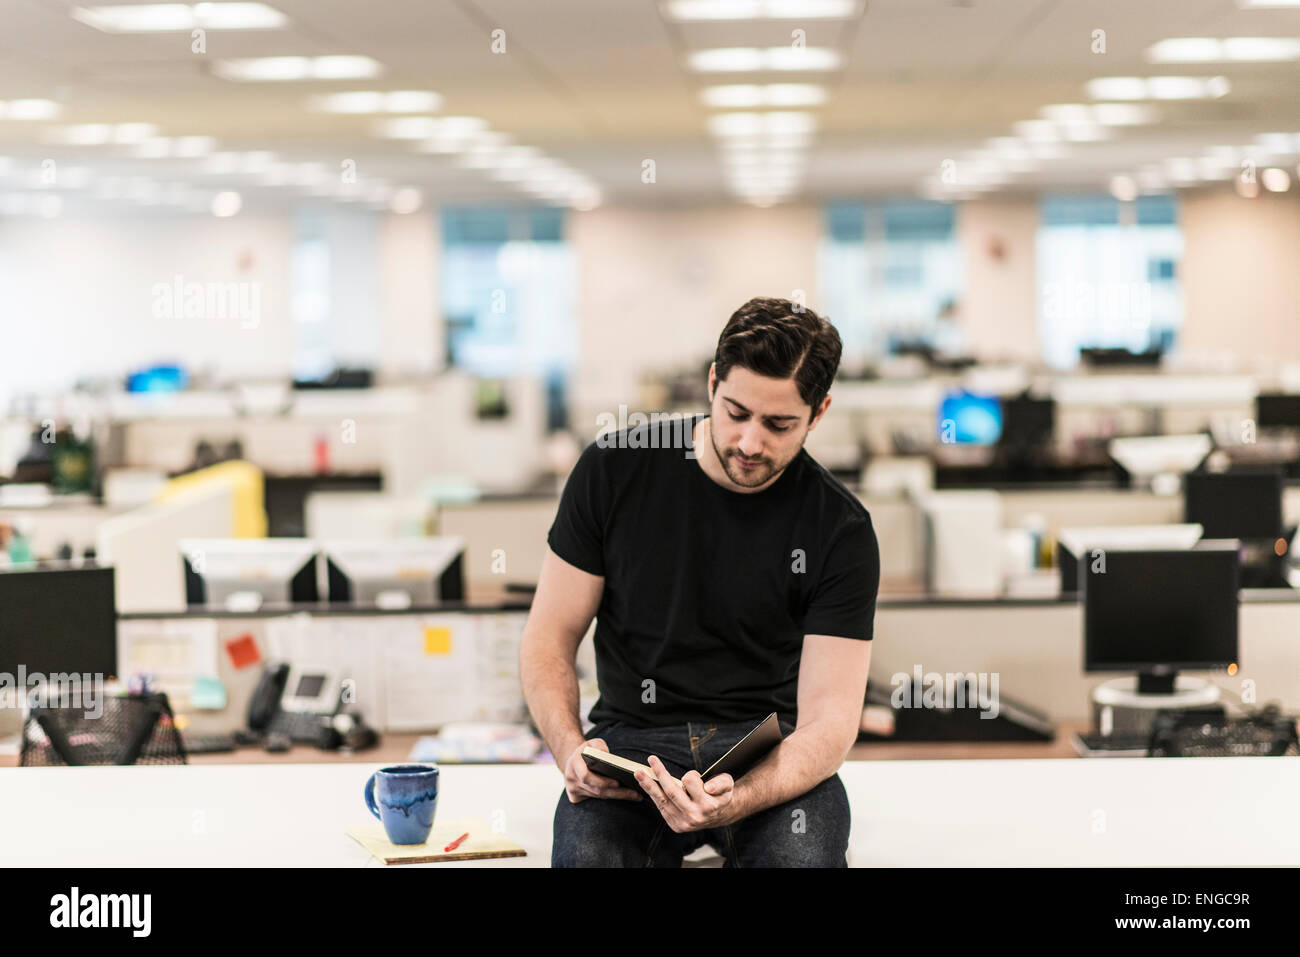 A man seated on a desk in an office looking at a book or diary. - Stock Image